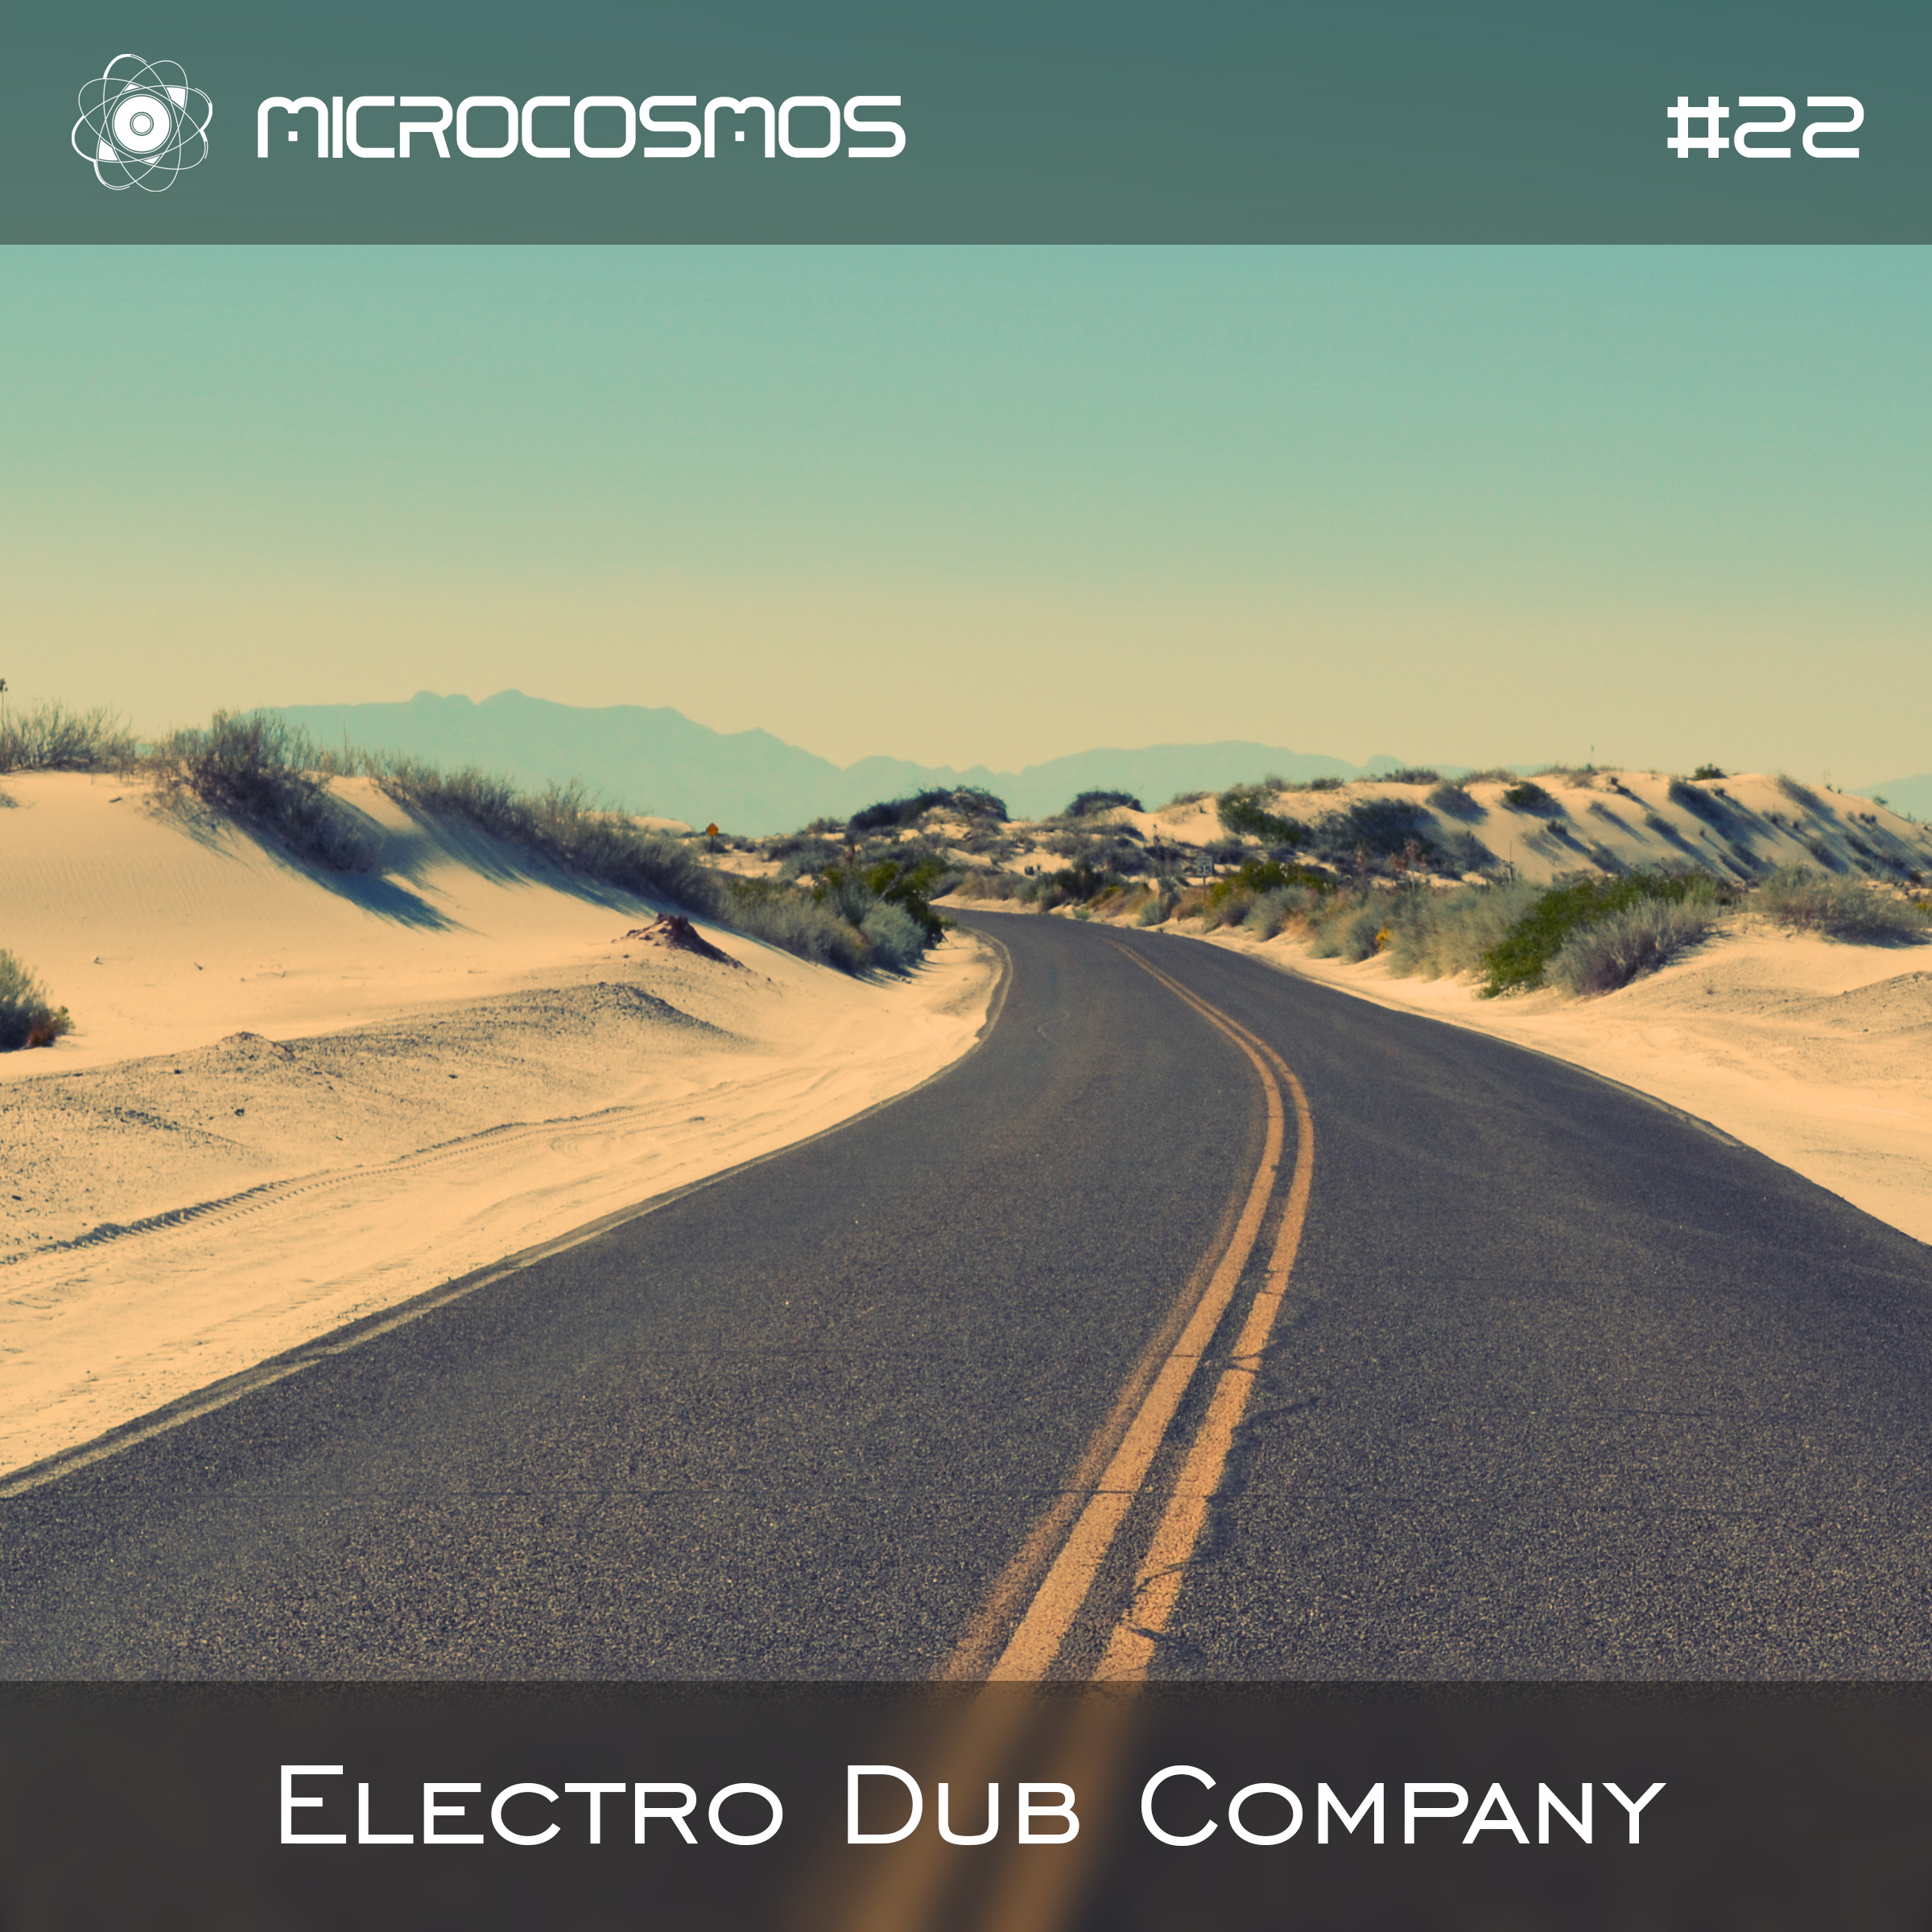 Electro Dub Company – Microcosmos Chillout & Ambient Podcast 022